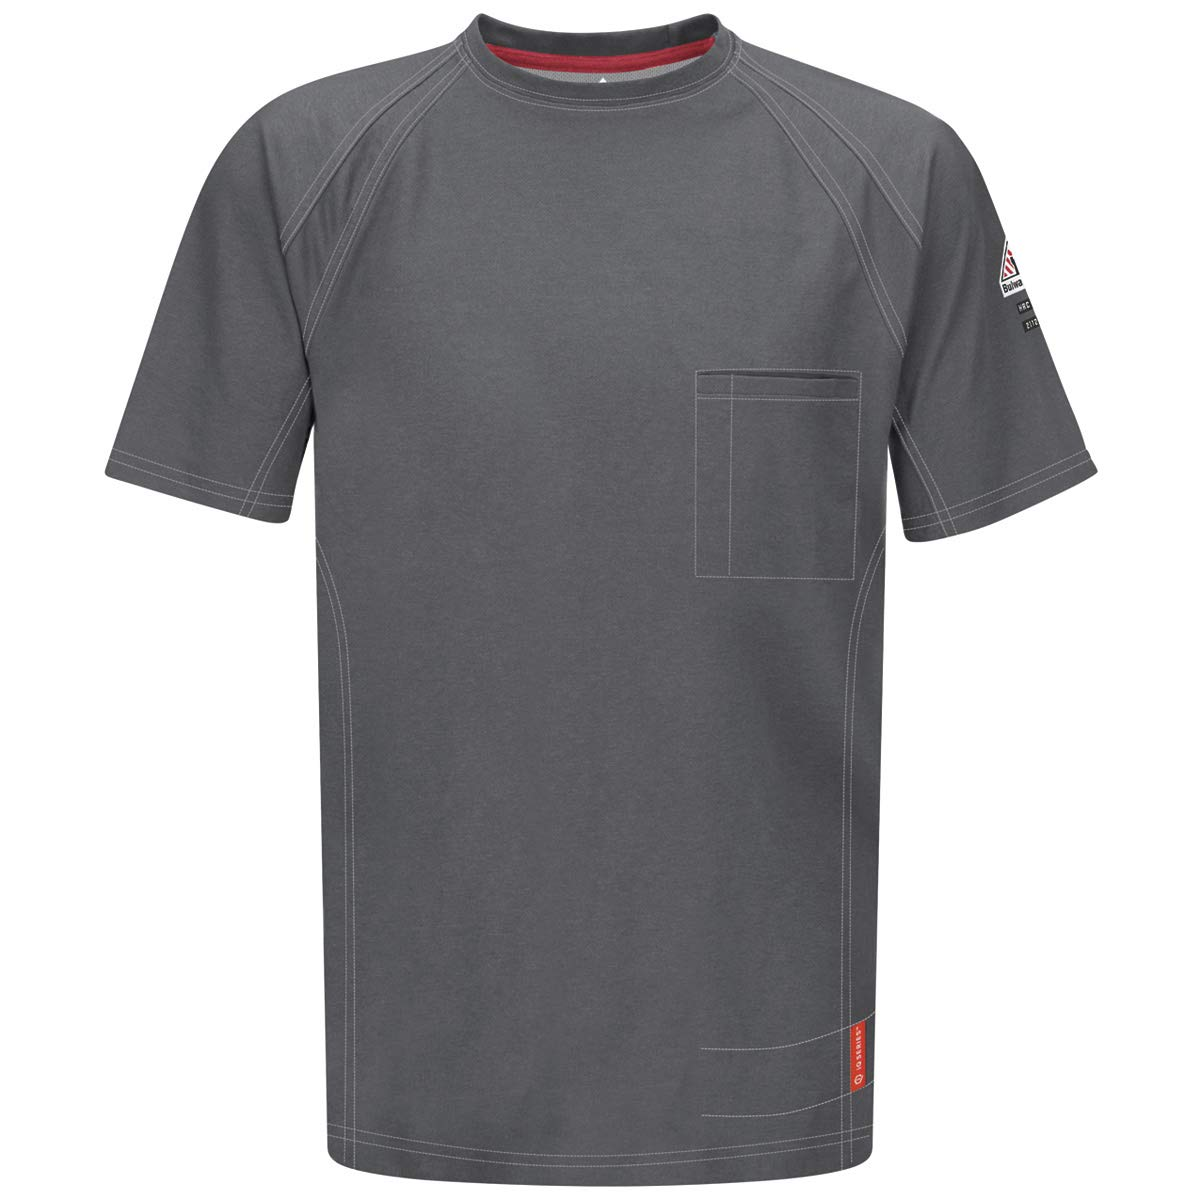 Bulwark 2X Charcoal 5.3 Ounce Westex G2 Cotton Polyester IQ Series Comfort Knit Flame Resistant Short Sleeve T-Shirt